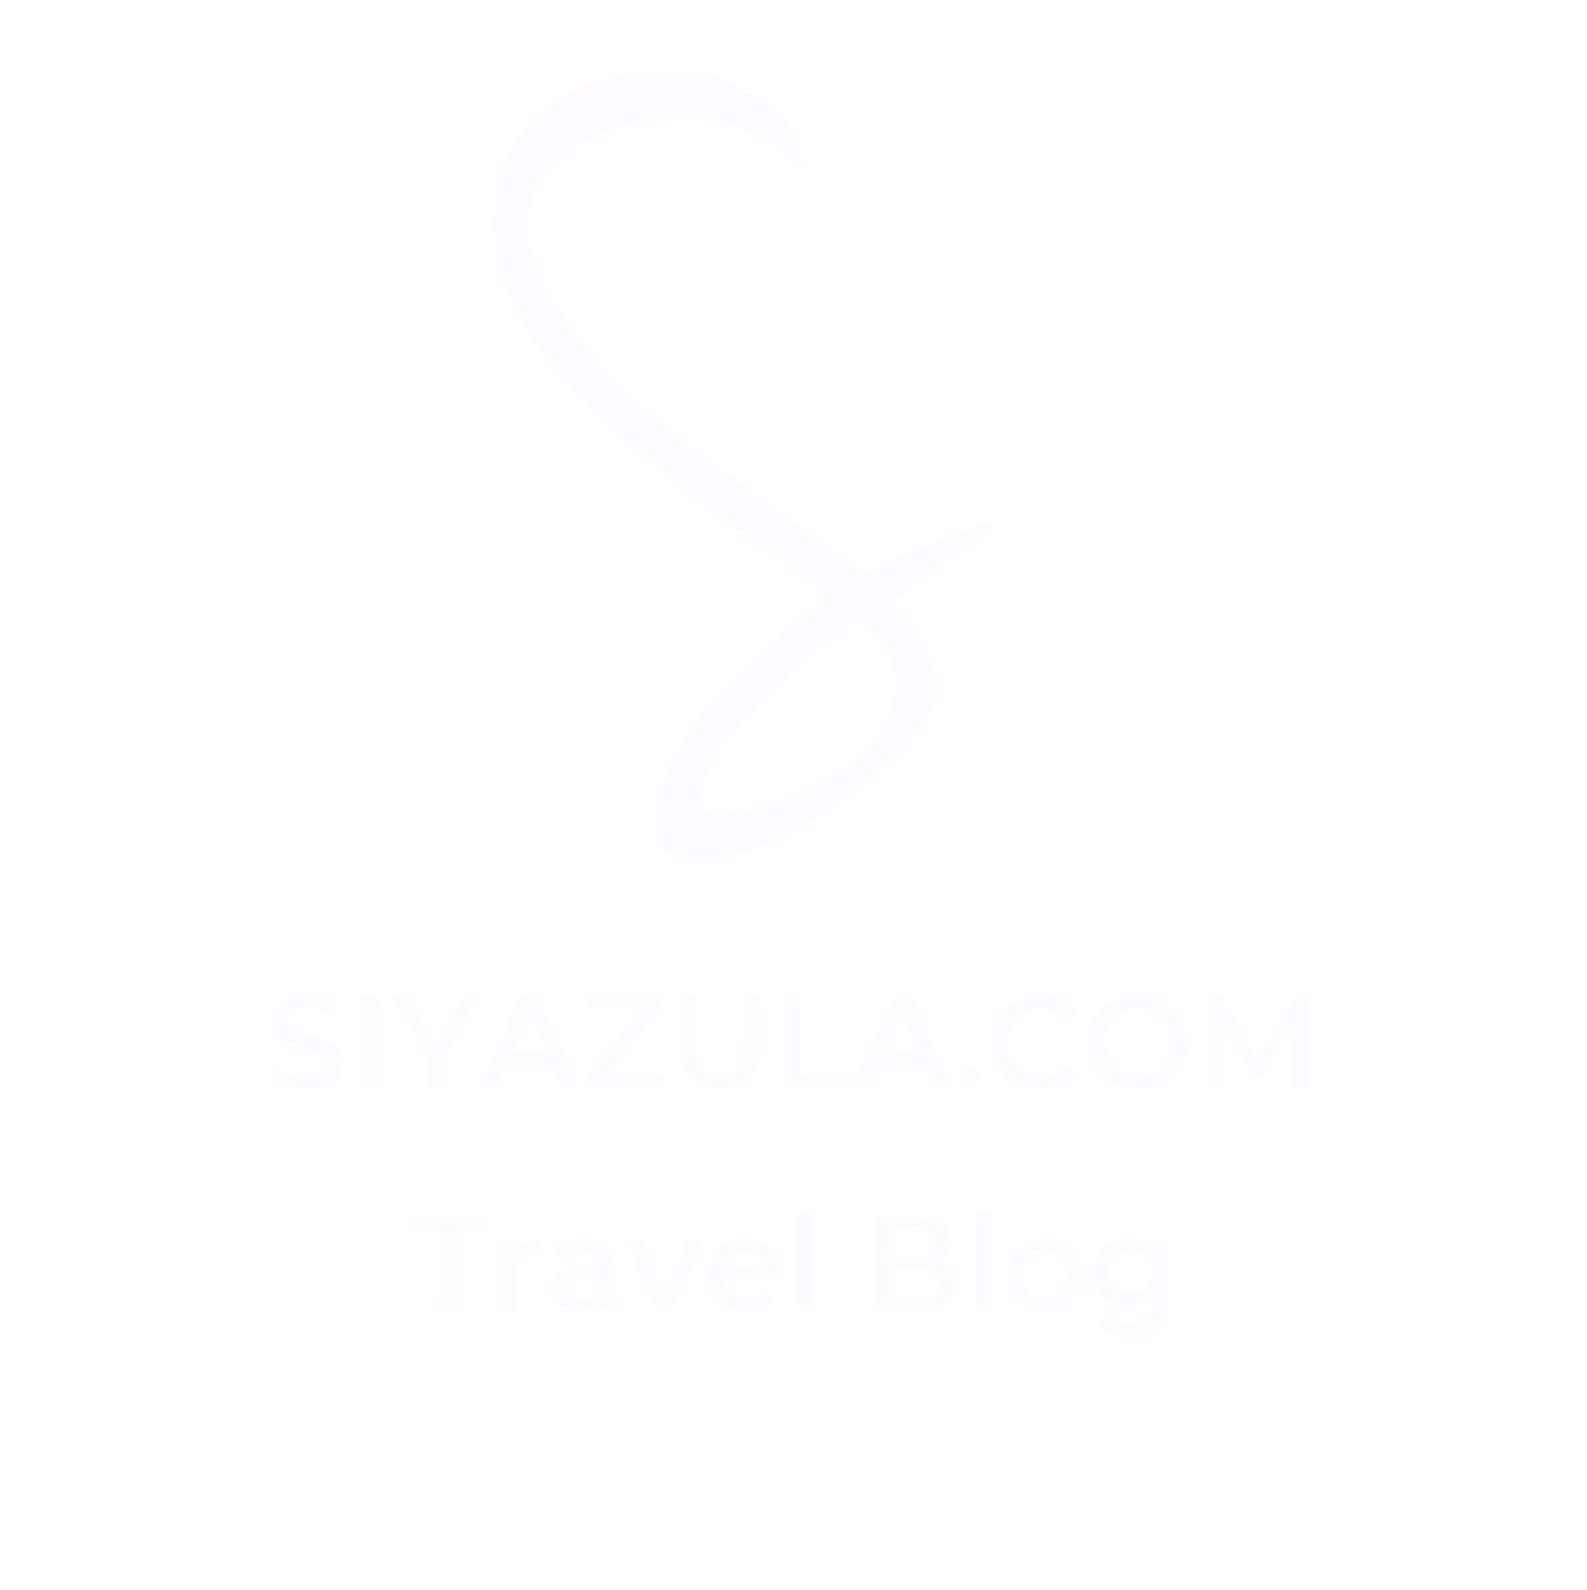 Siyazula Travel Blog